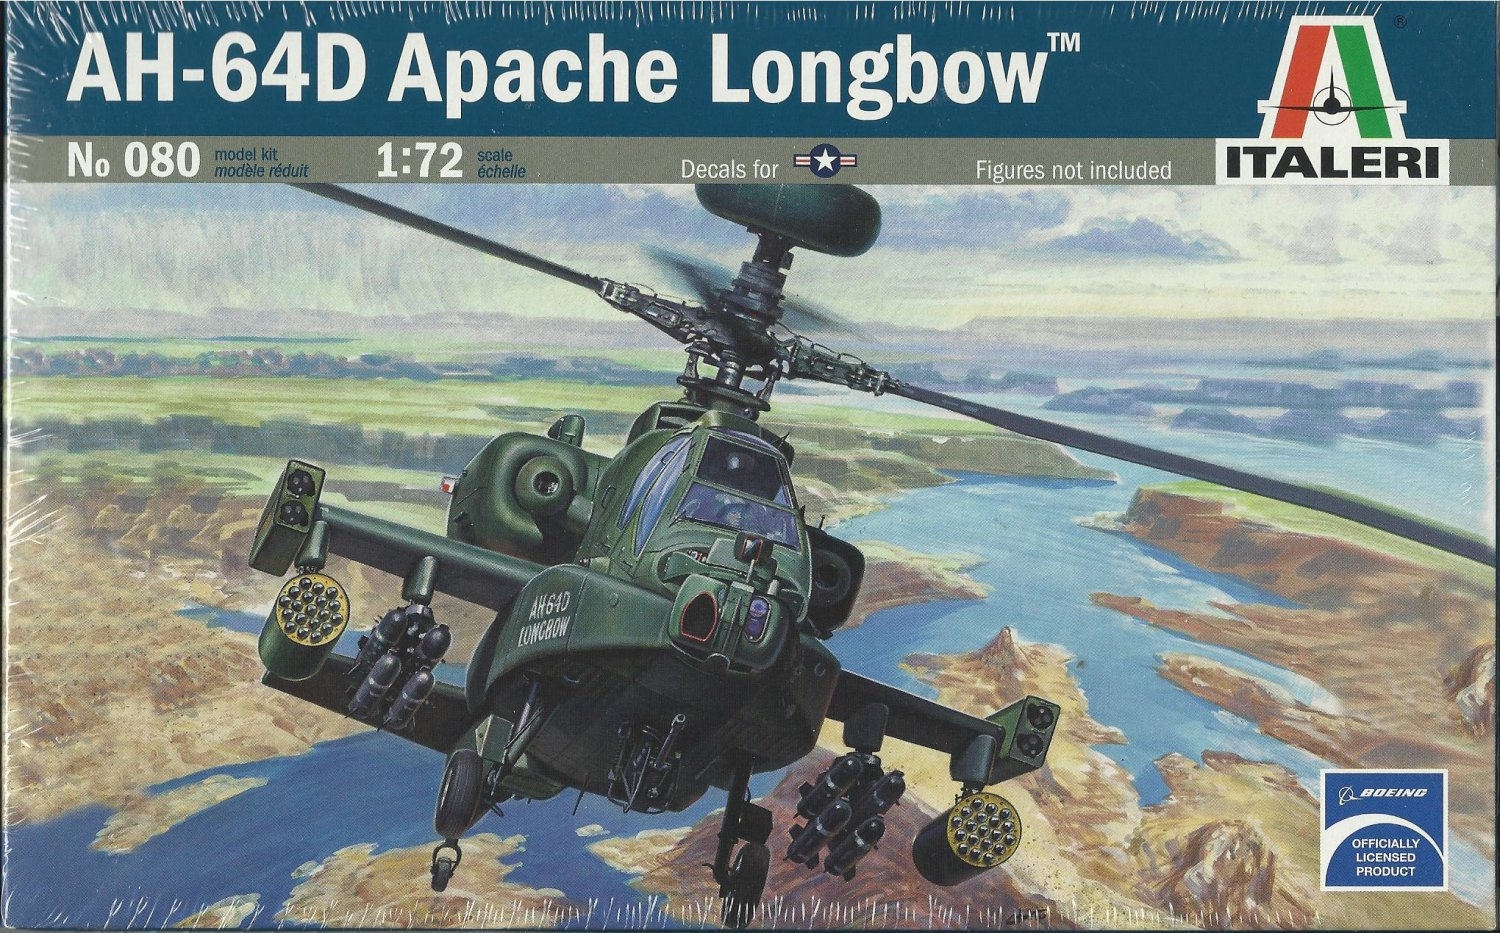 AH-64D Long Bow Apache Helicopter Model Kit